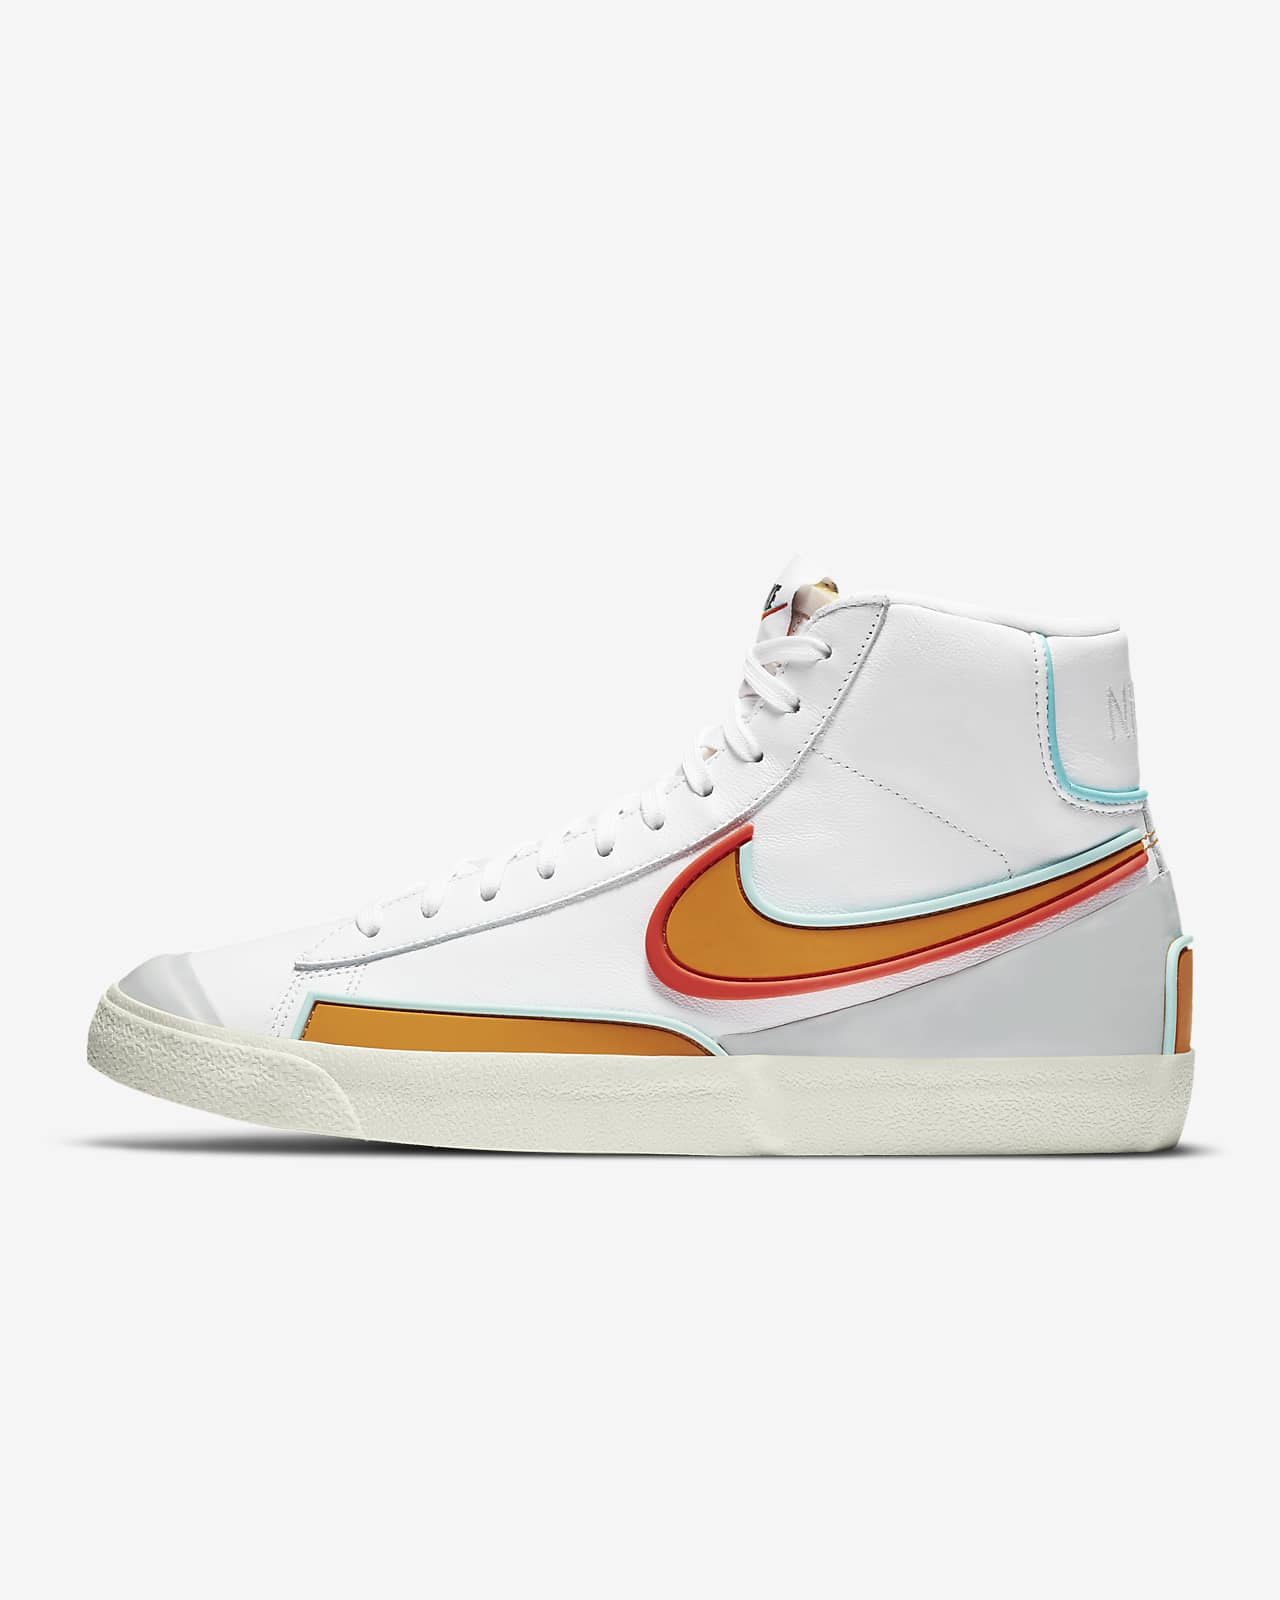 Nike Blazer Mid '77 Infinite Men's Shoe